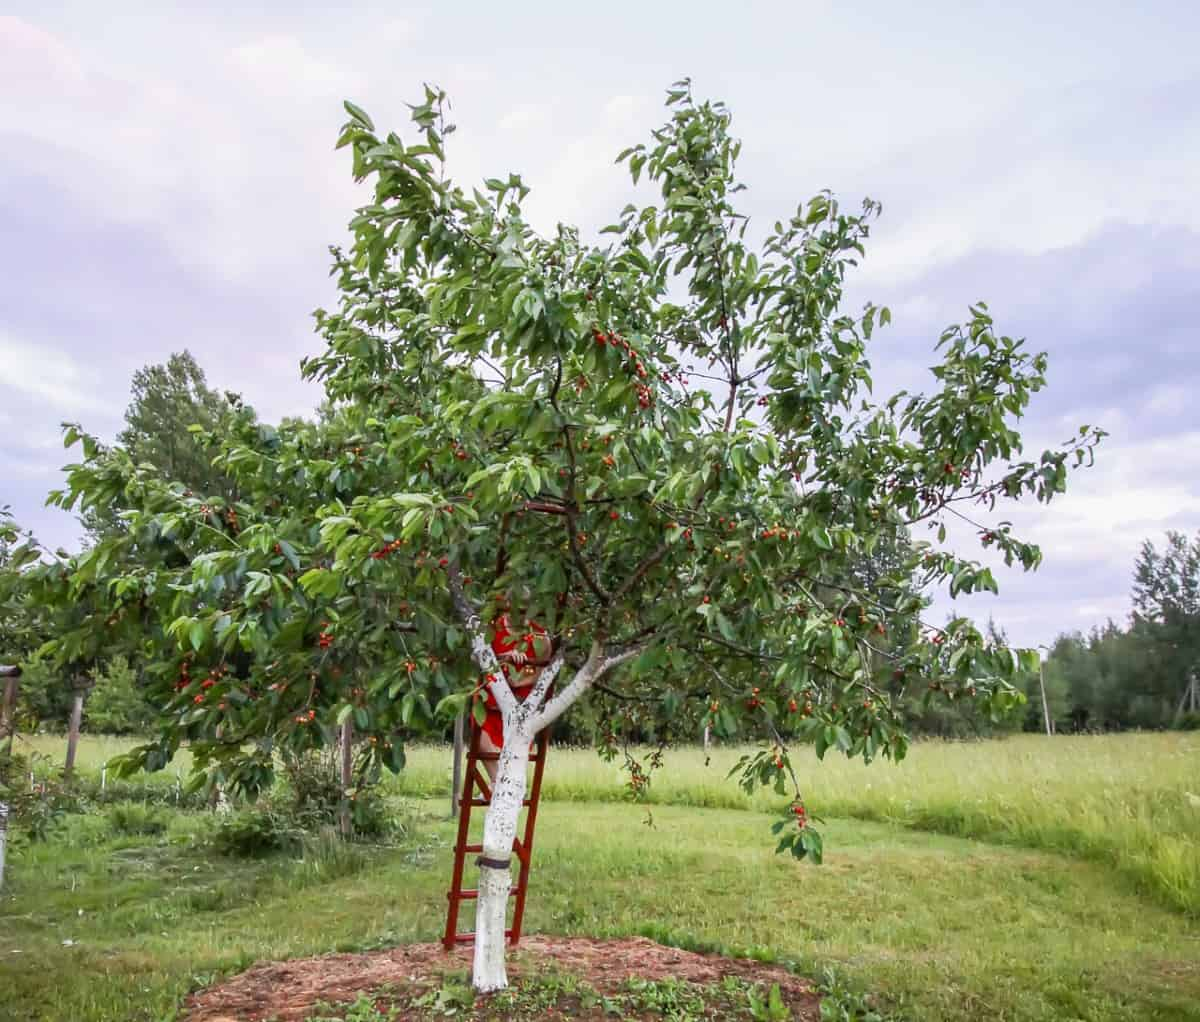 Grow 2-3 sweet cherry trees together for pollination.